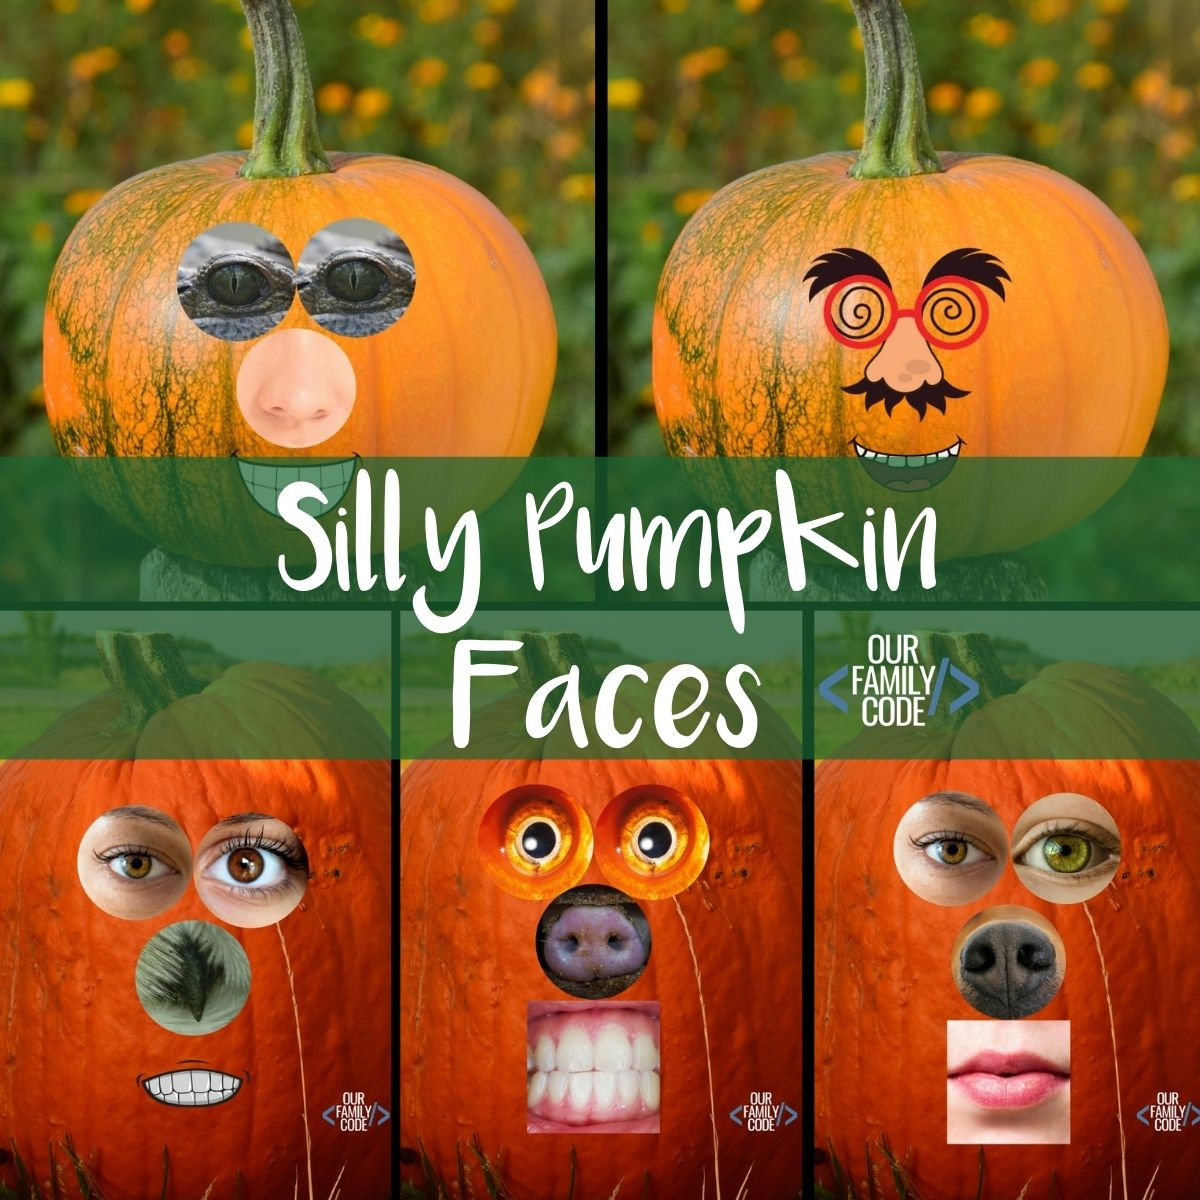 Learn About Faces And Emotions With This Silly Pumpkin Faces Activity